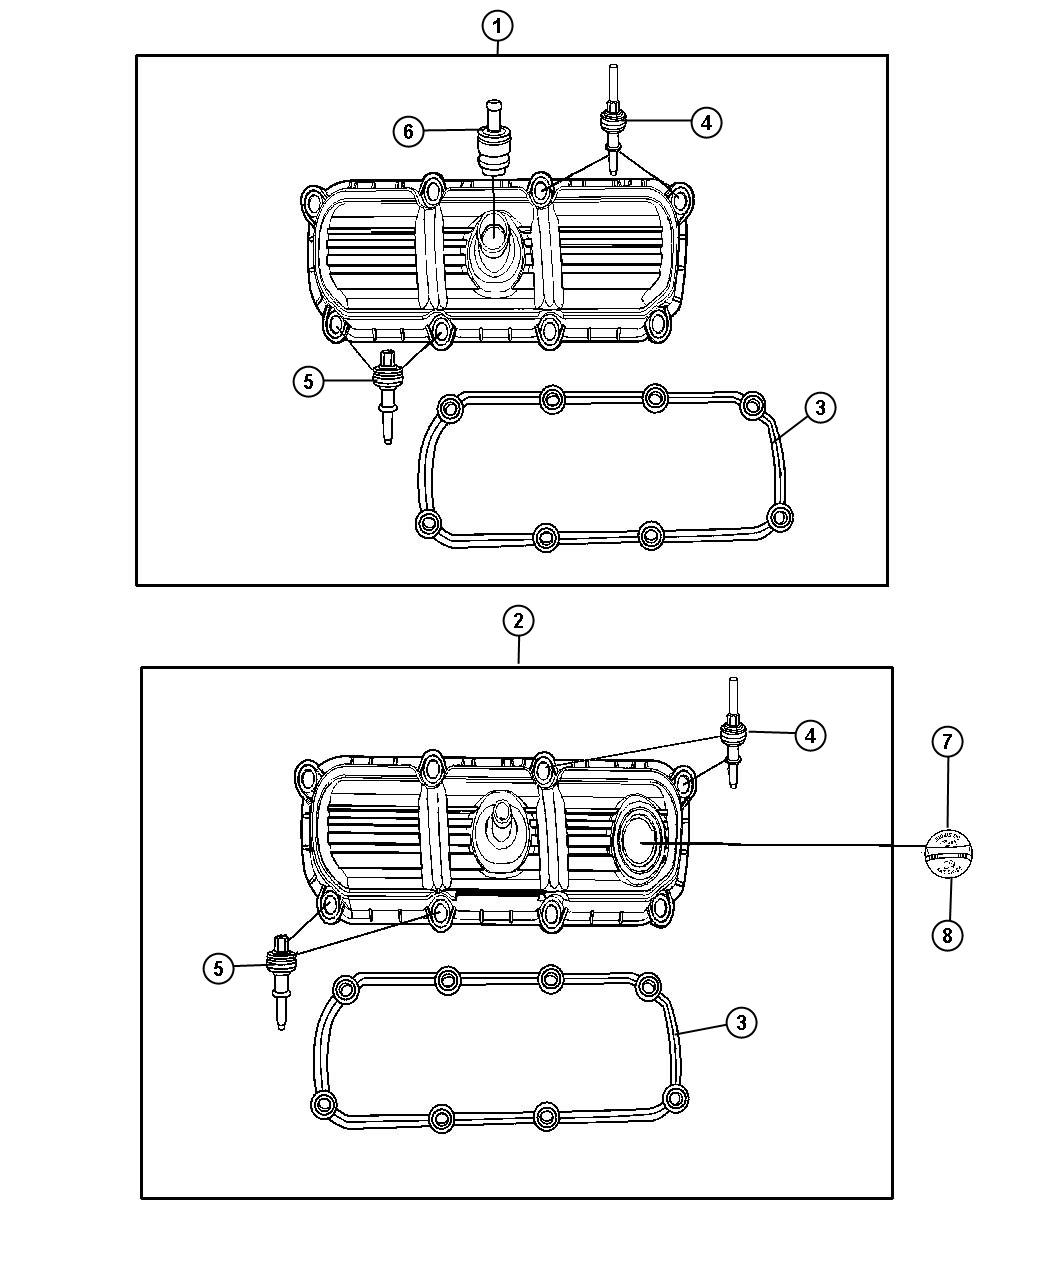 Jeep Cherokee Isolator Used For Bolt And Grommet